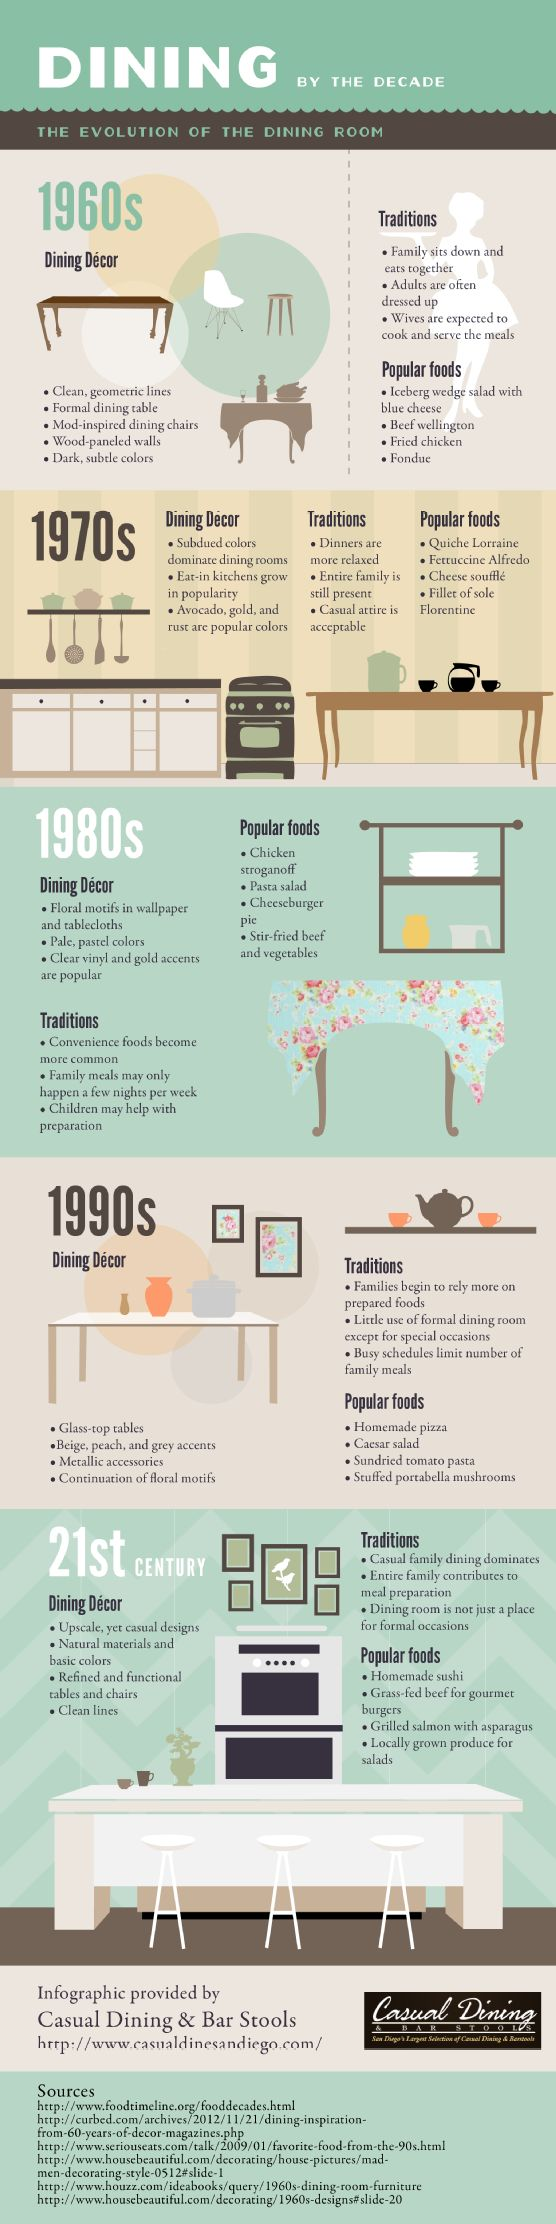 25 best ideas about 1980s interior on pinterest 1980s for Interior design styles by decade